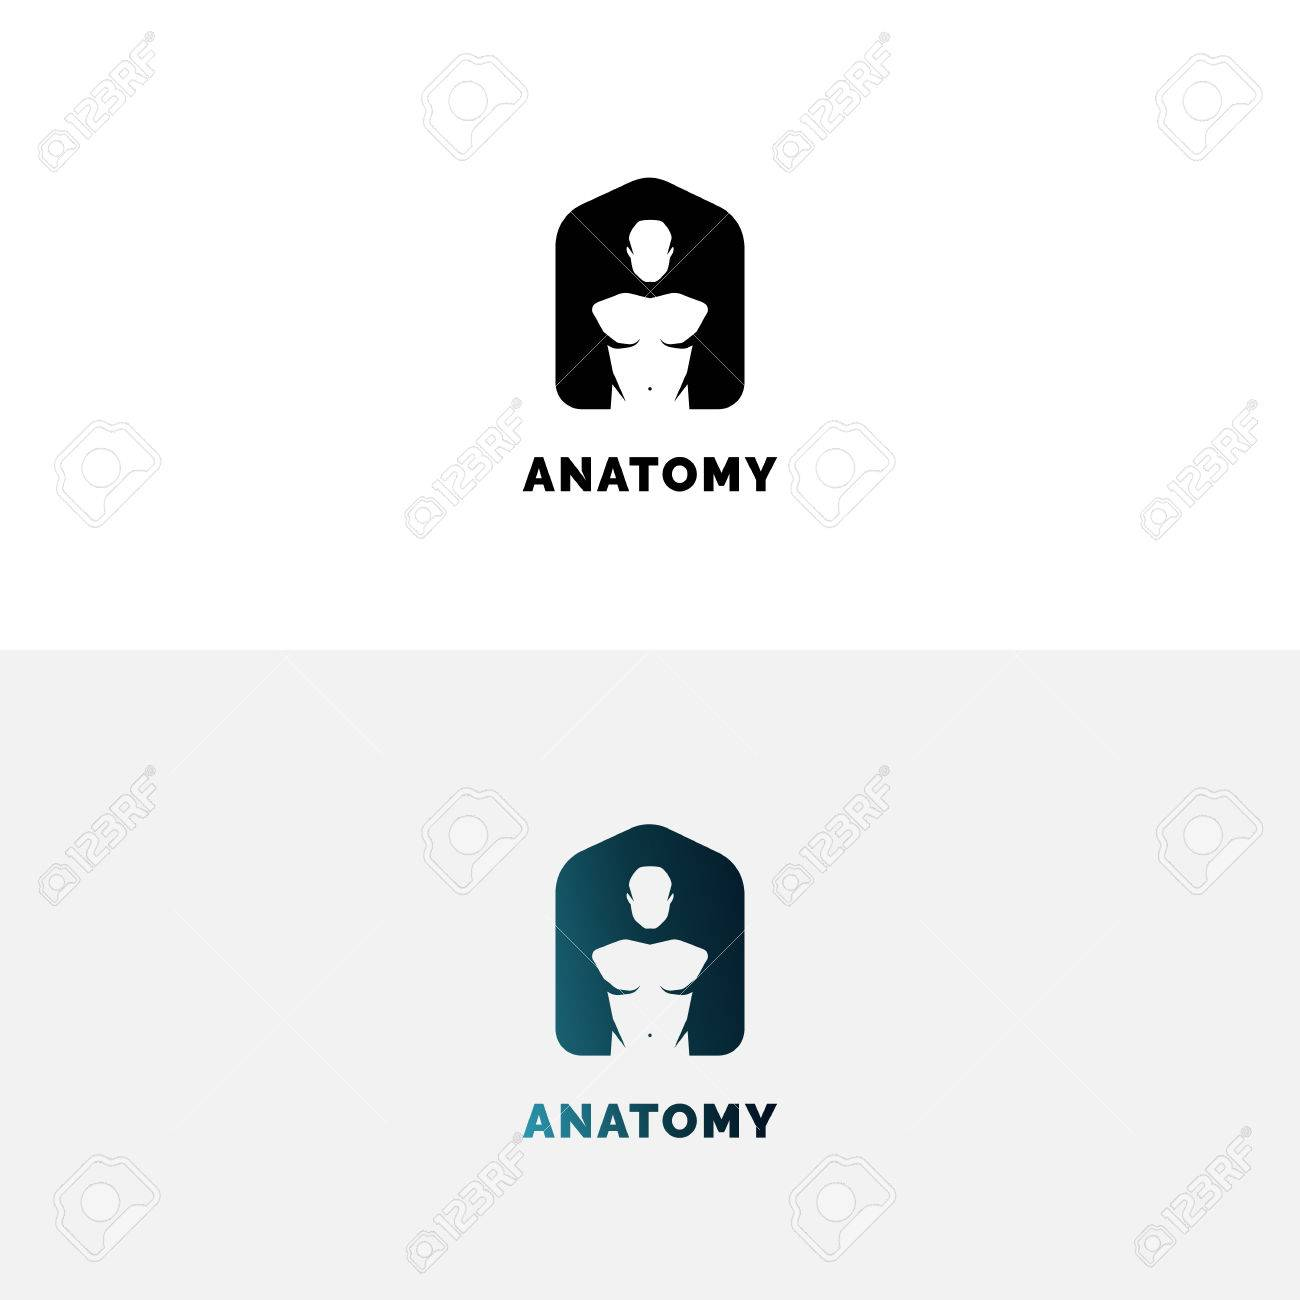 Anatomy Logo With Human Torso. Negative Space A Letter Logo. Royalty ...